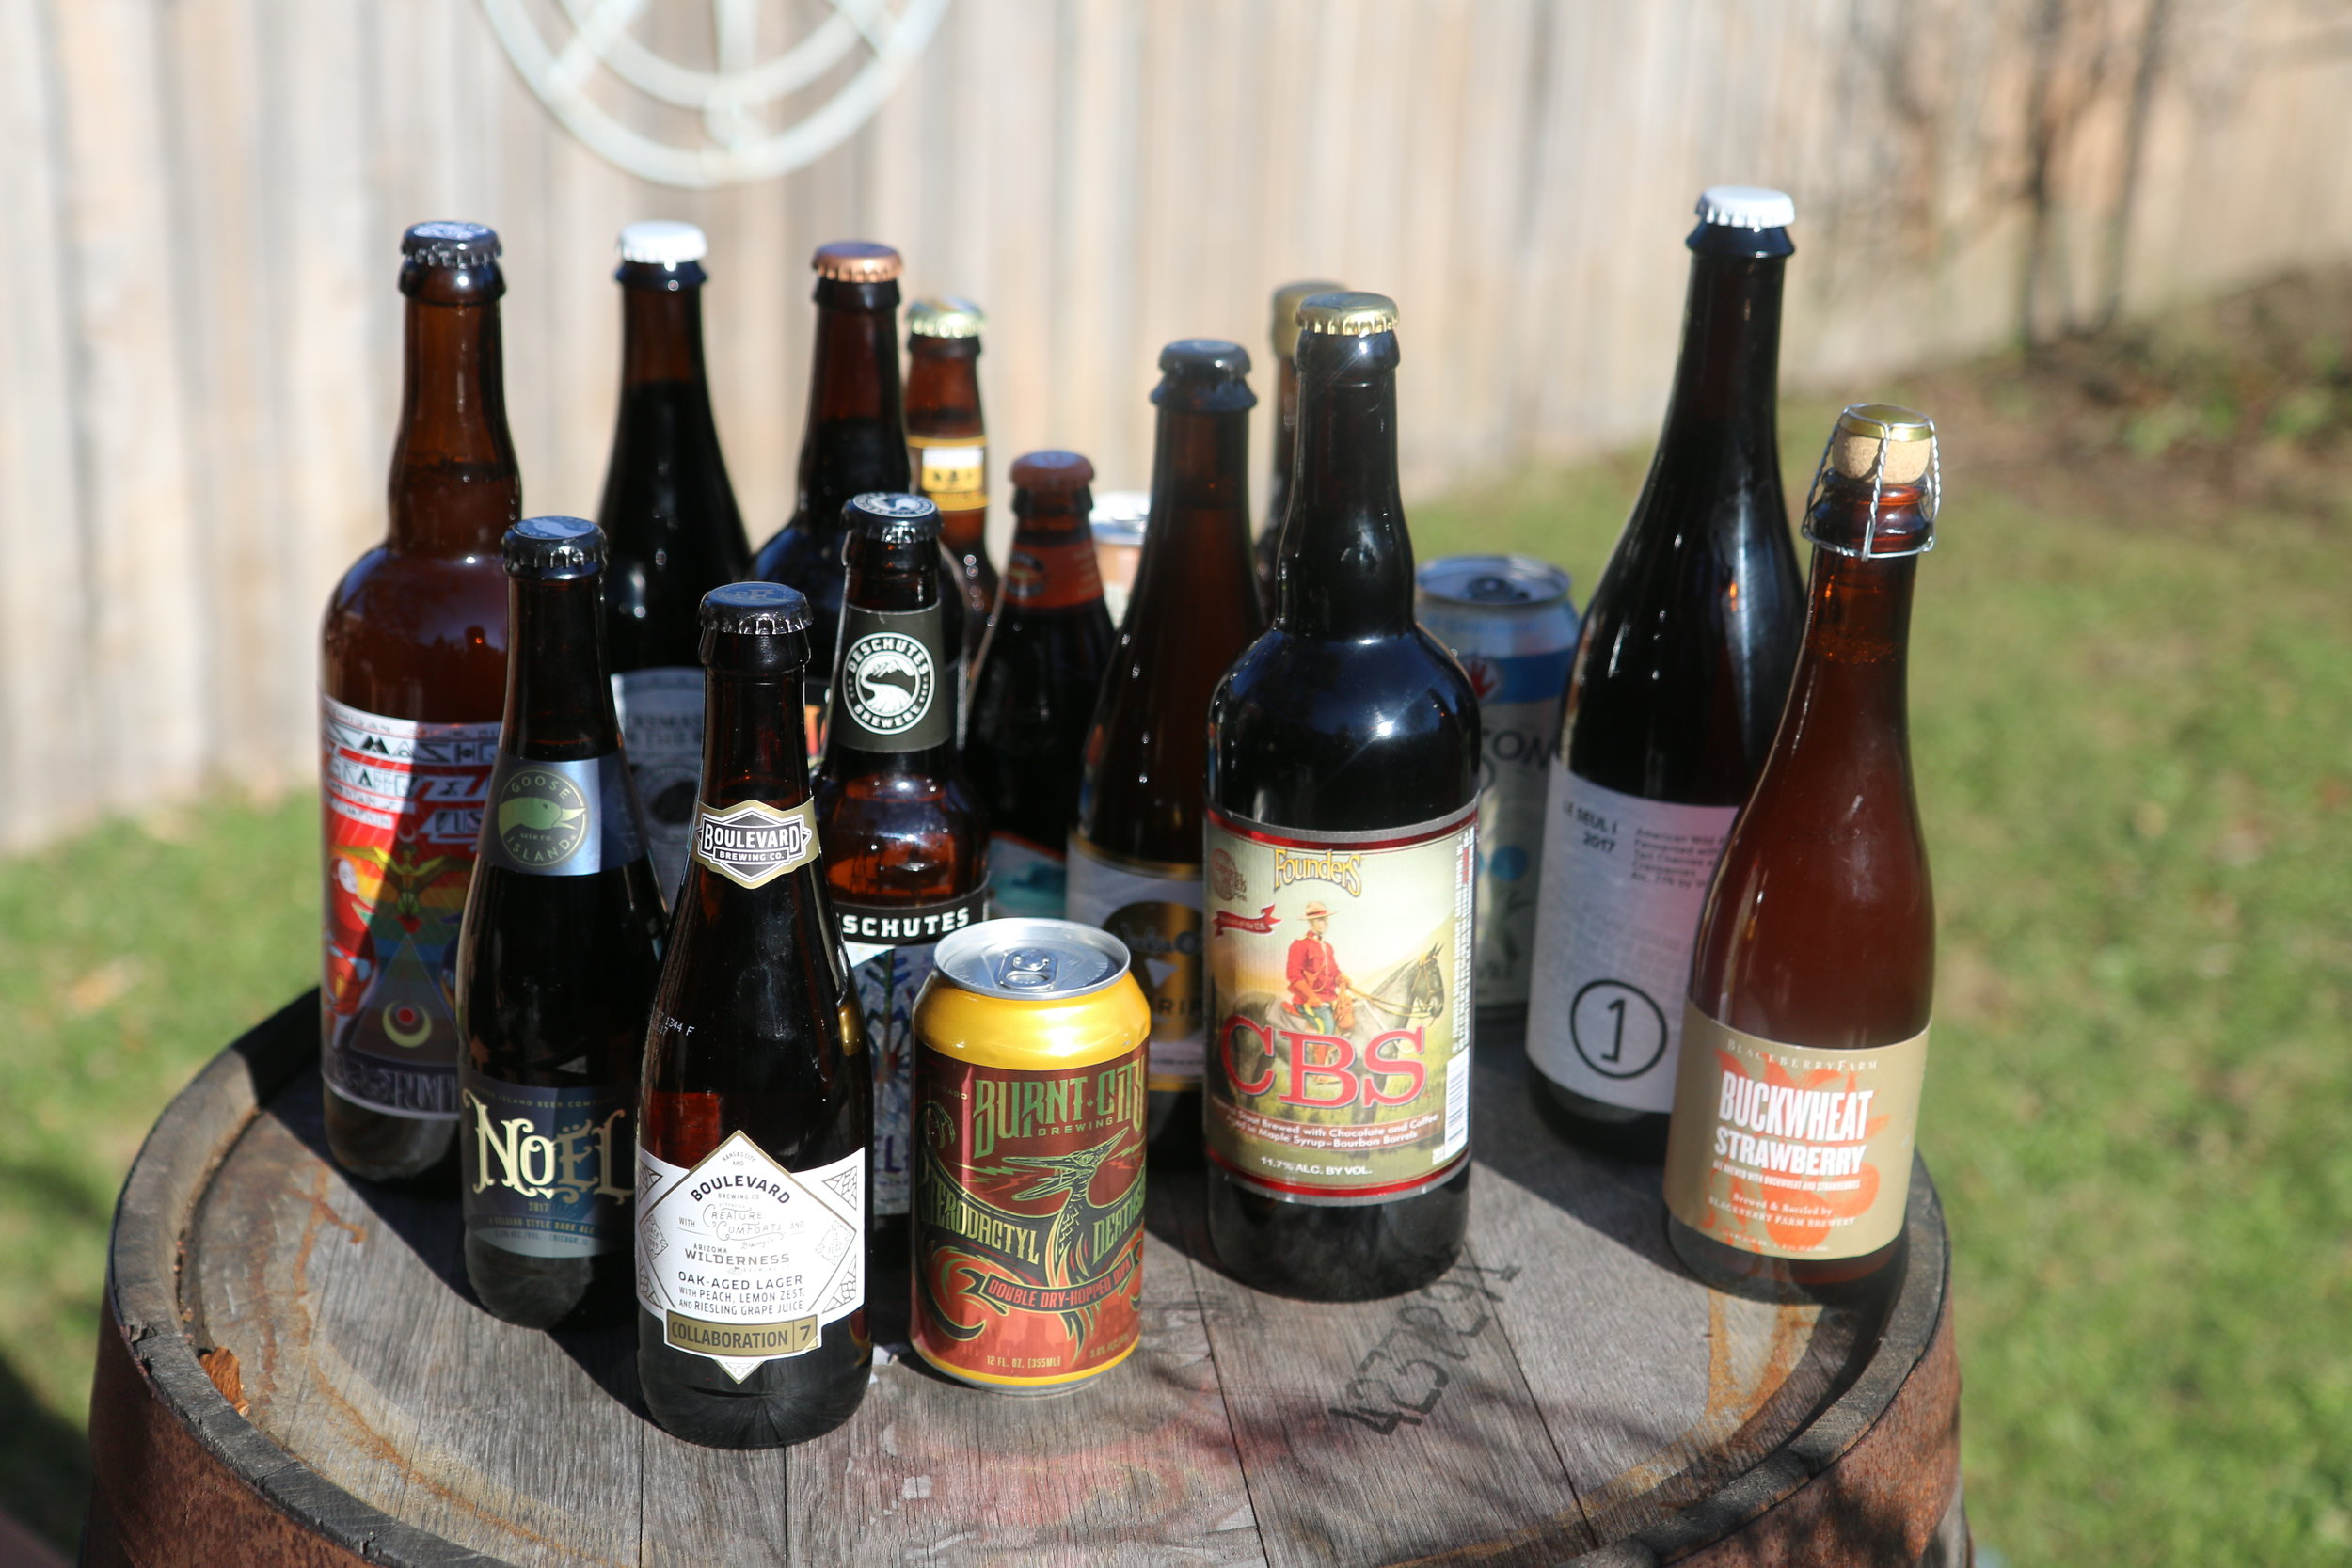 The Hop Reviews Vol. 19: A December Beer Review